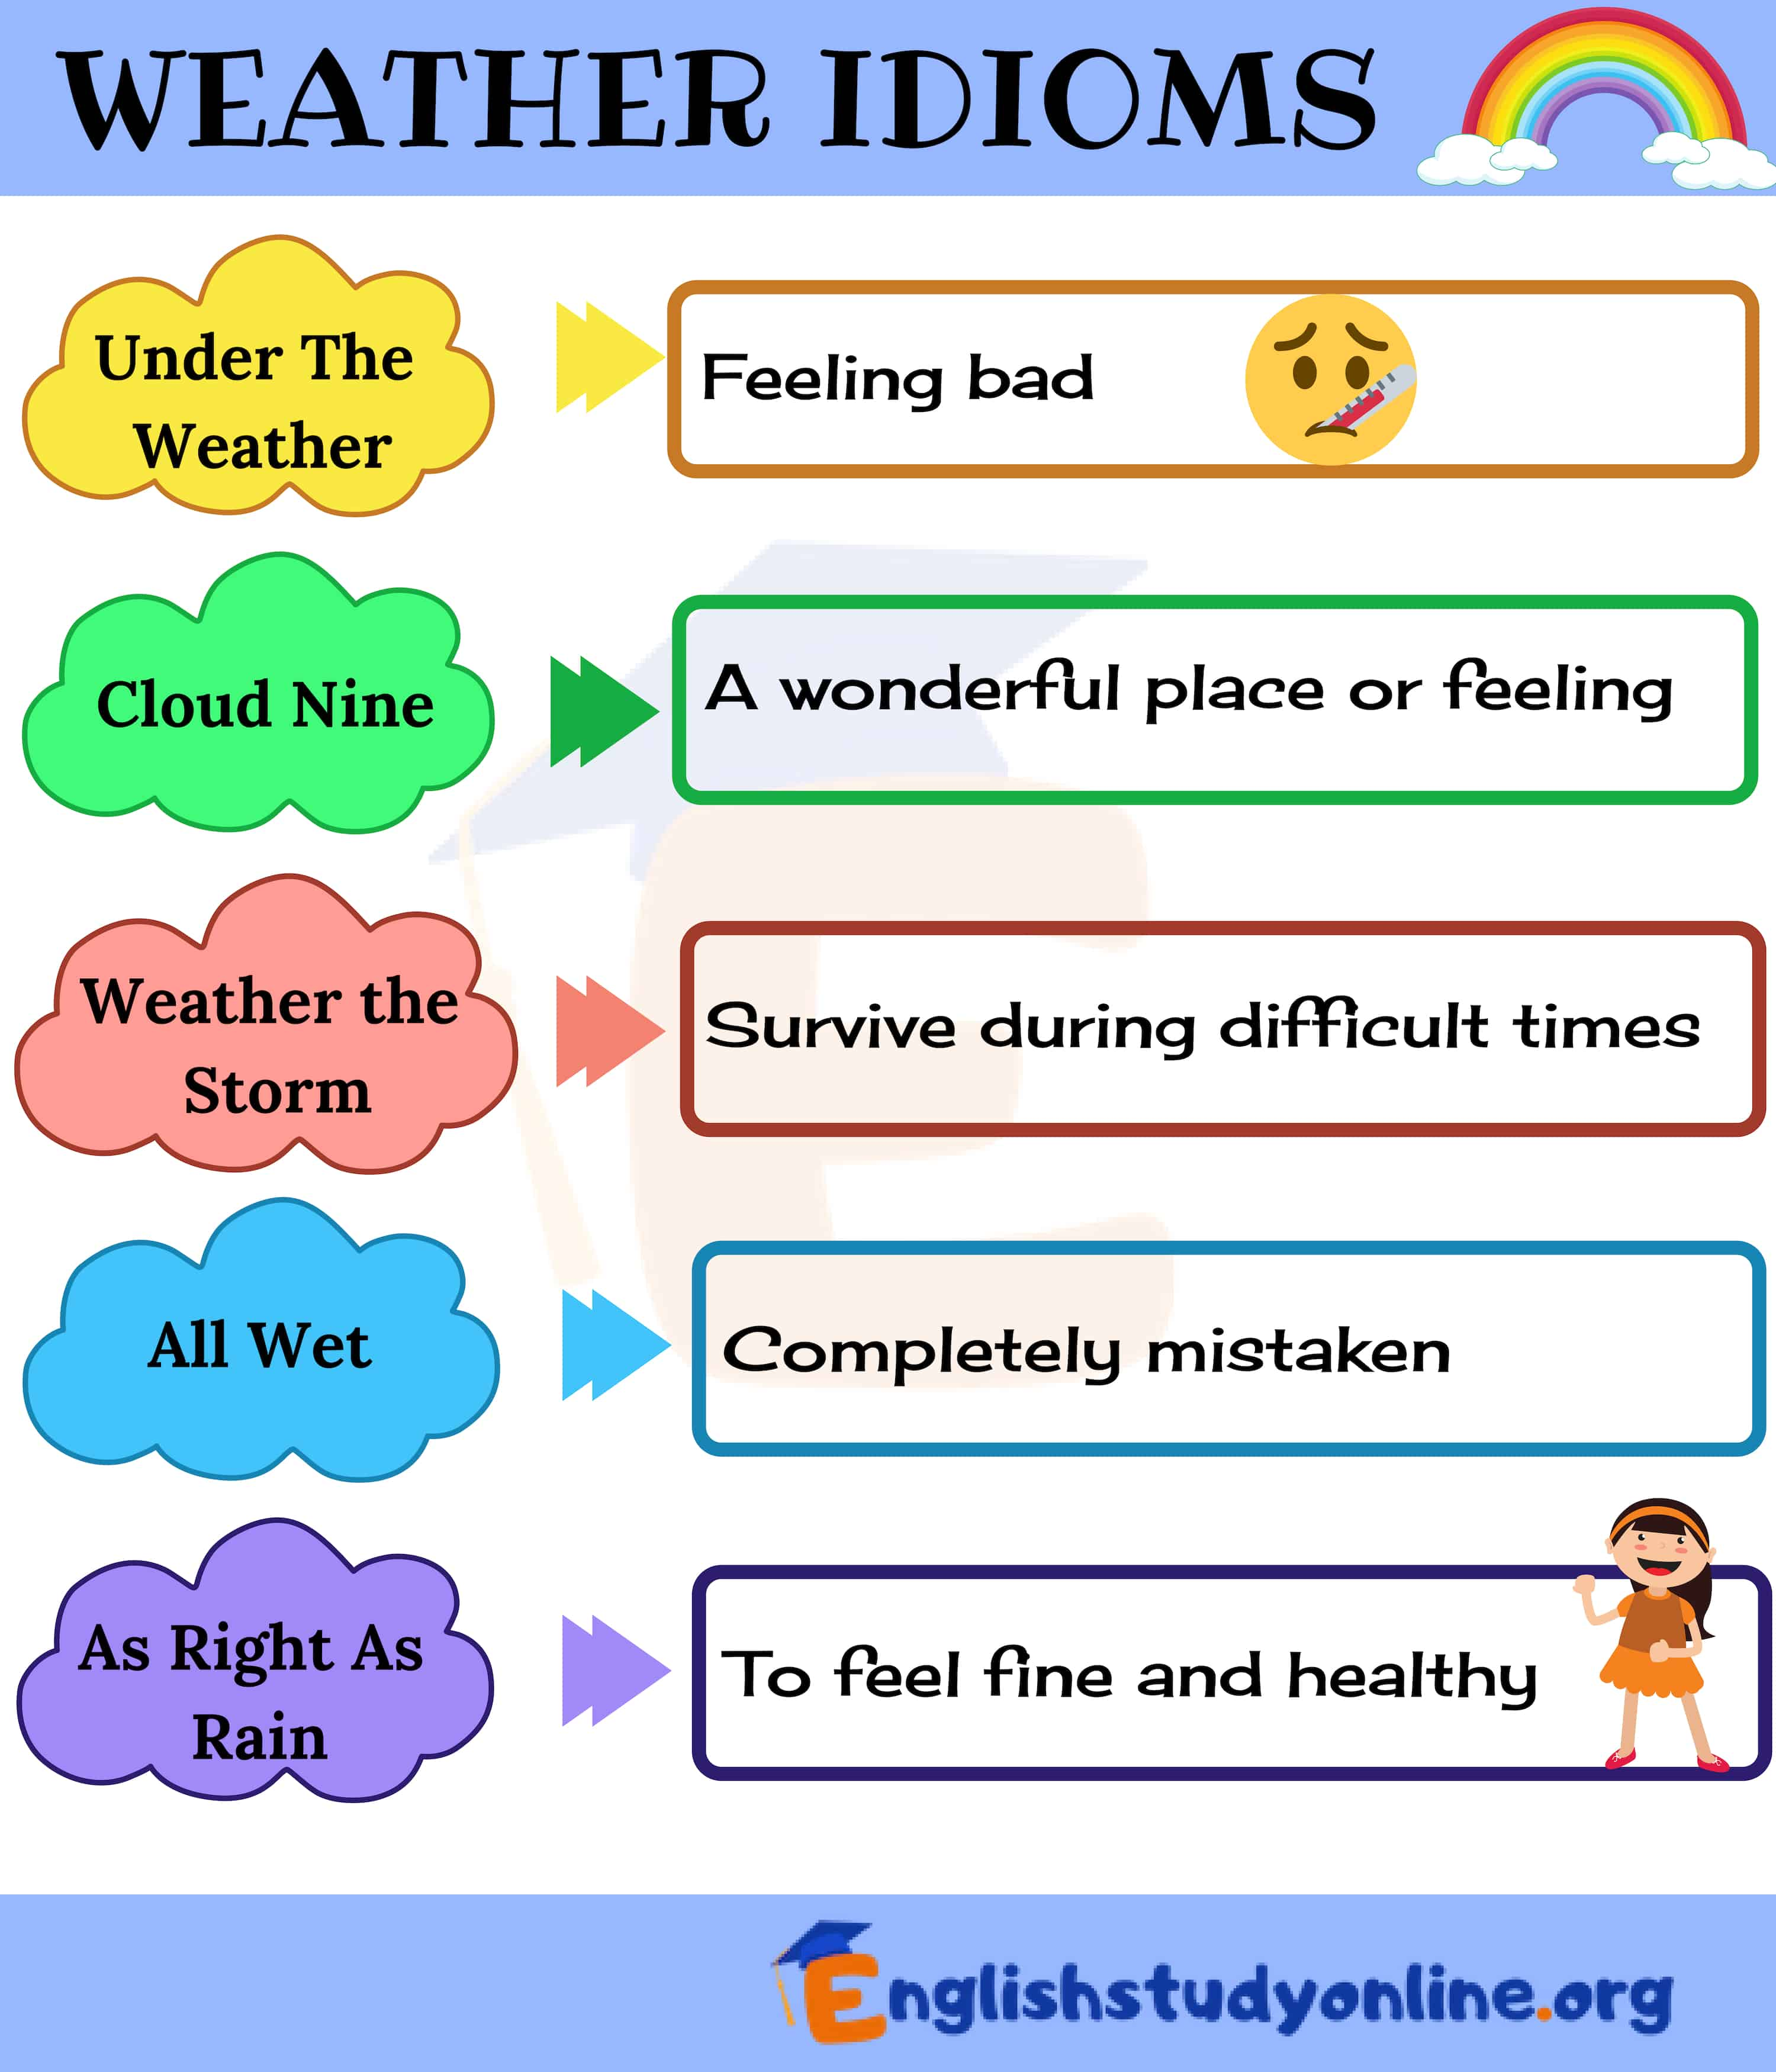 Weather Idioms - Idioms about Weather in English 1